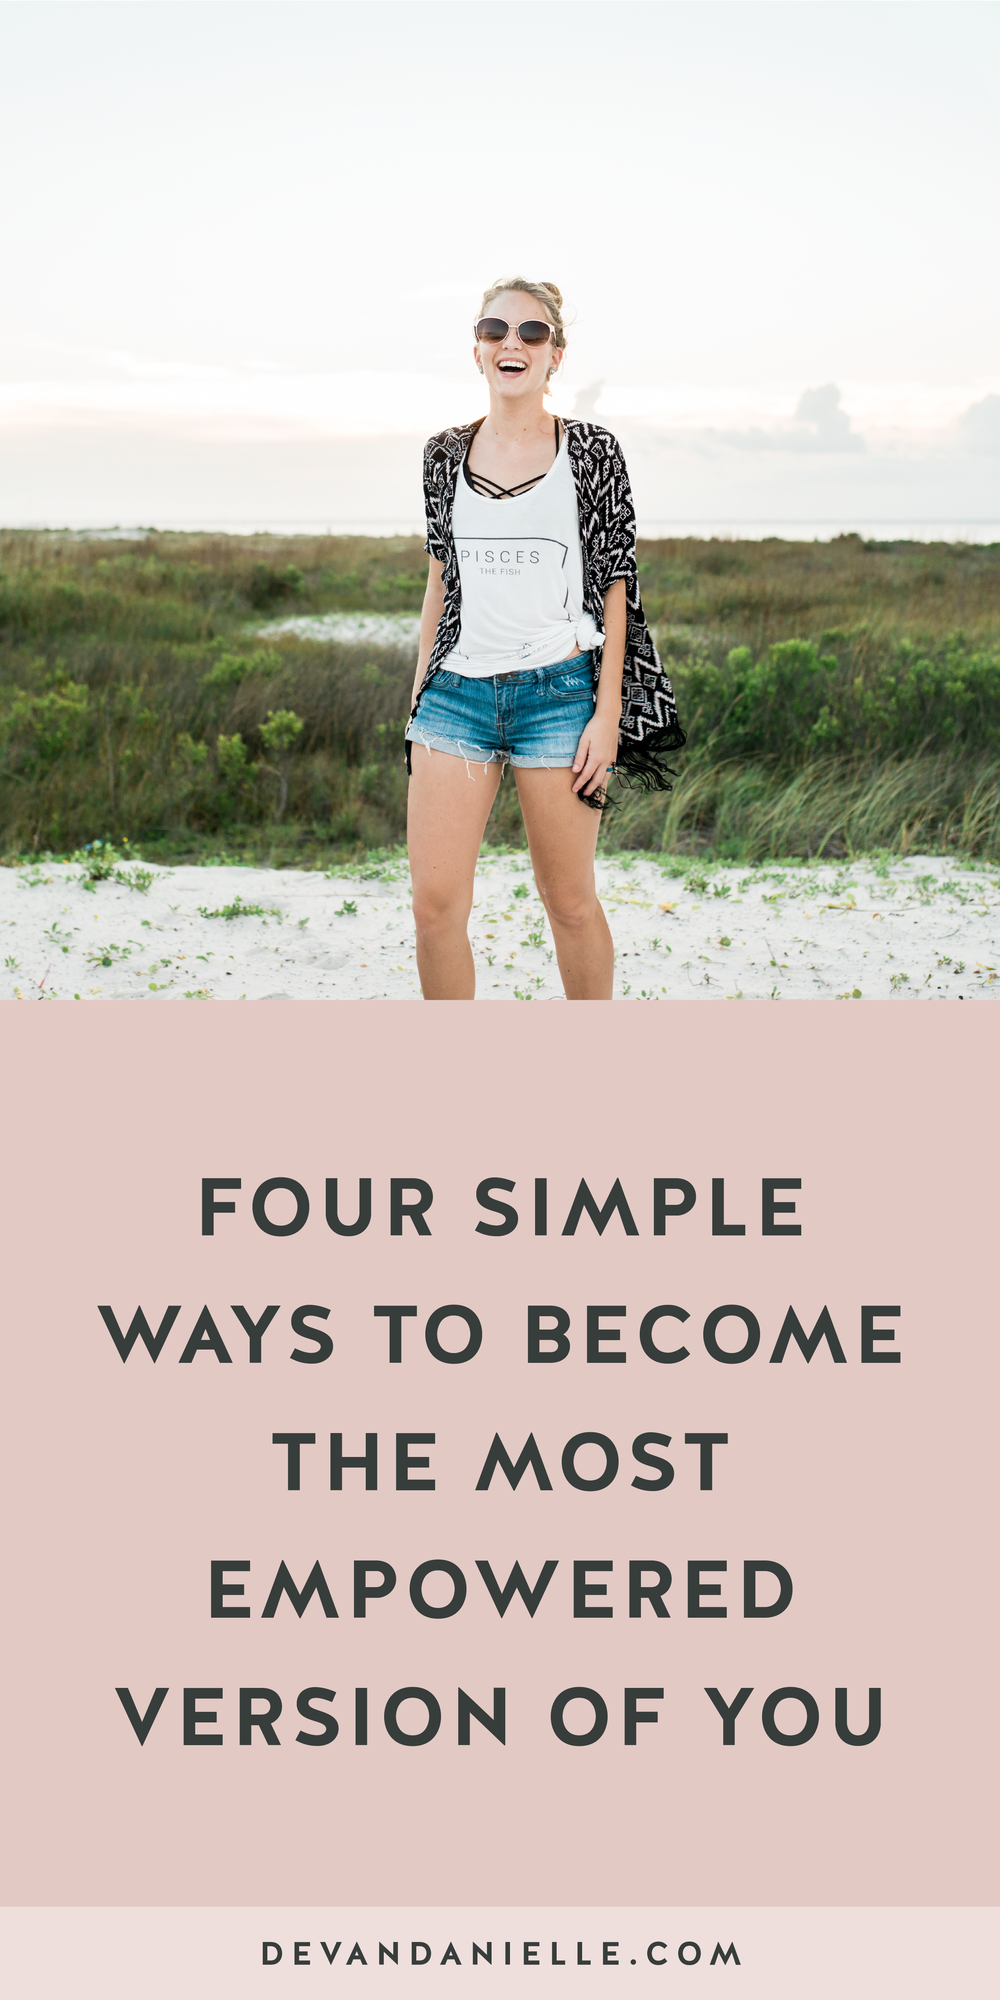 4-simple-ways-to-become-the-most-empowered-version-of-you-01.png